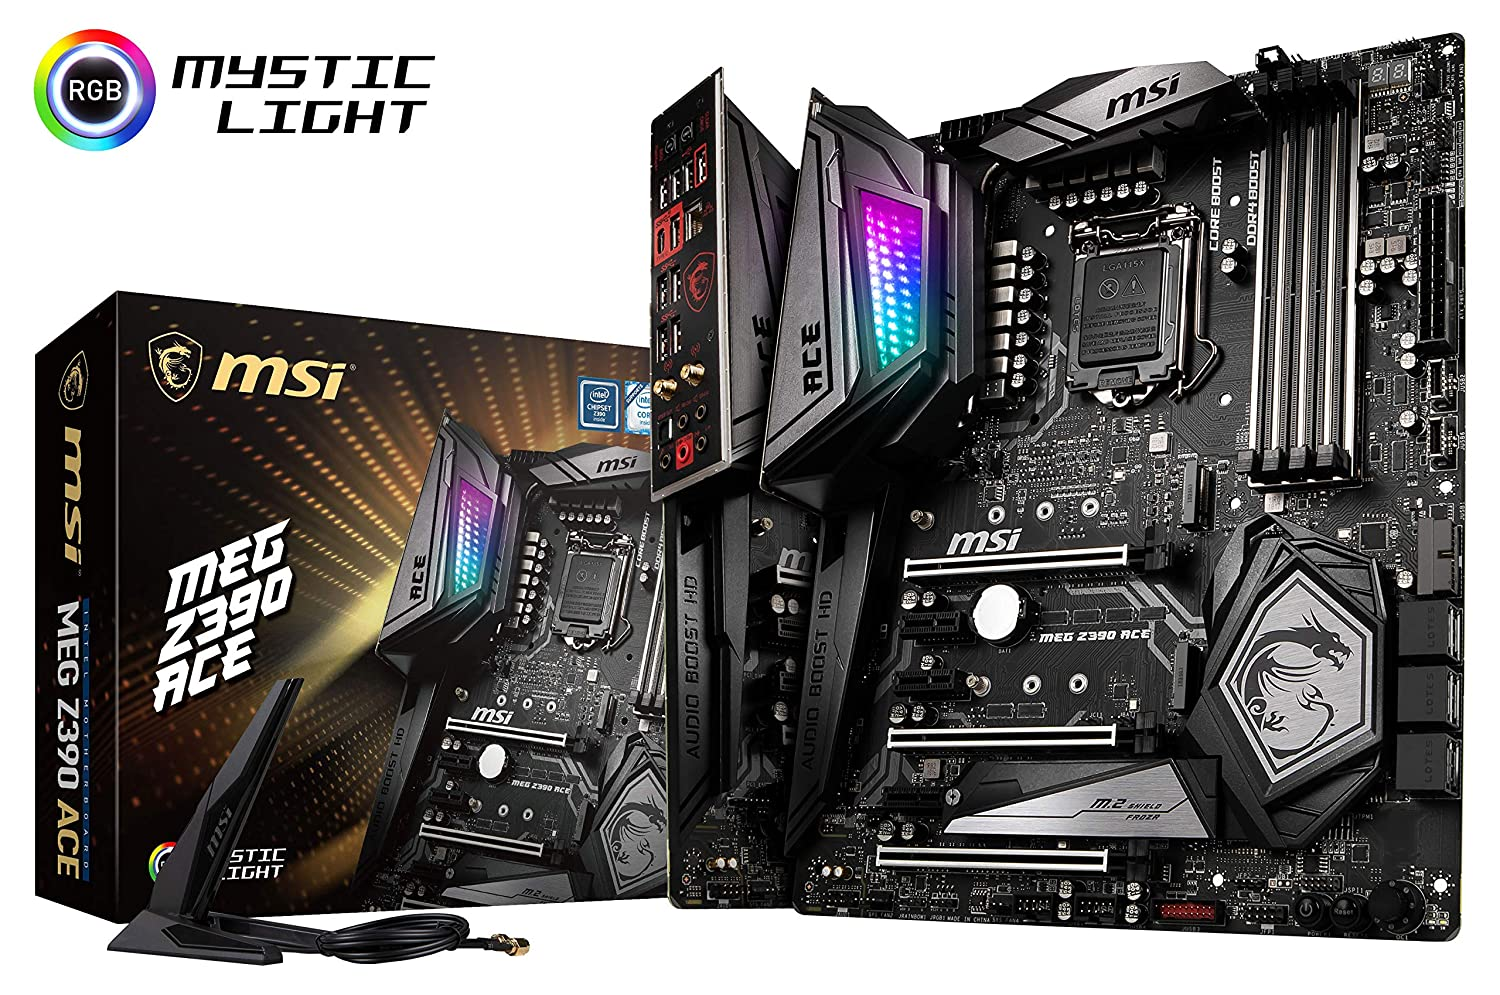 MSI MEG Z390 ACE LGA1151 (Intel 8th and 9th Gen) M.2 USB 3.1 Gen 2 DDR4 Wi-Fi SLI CFX ATX Z390 Gaming Motherboard